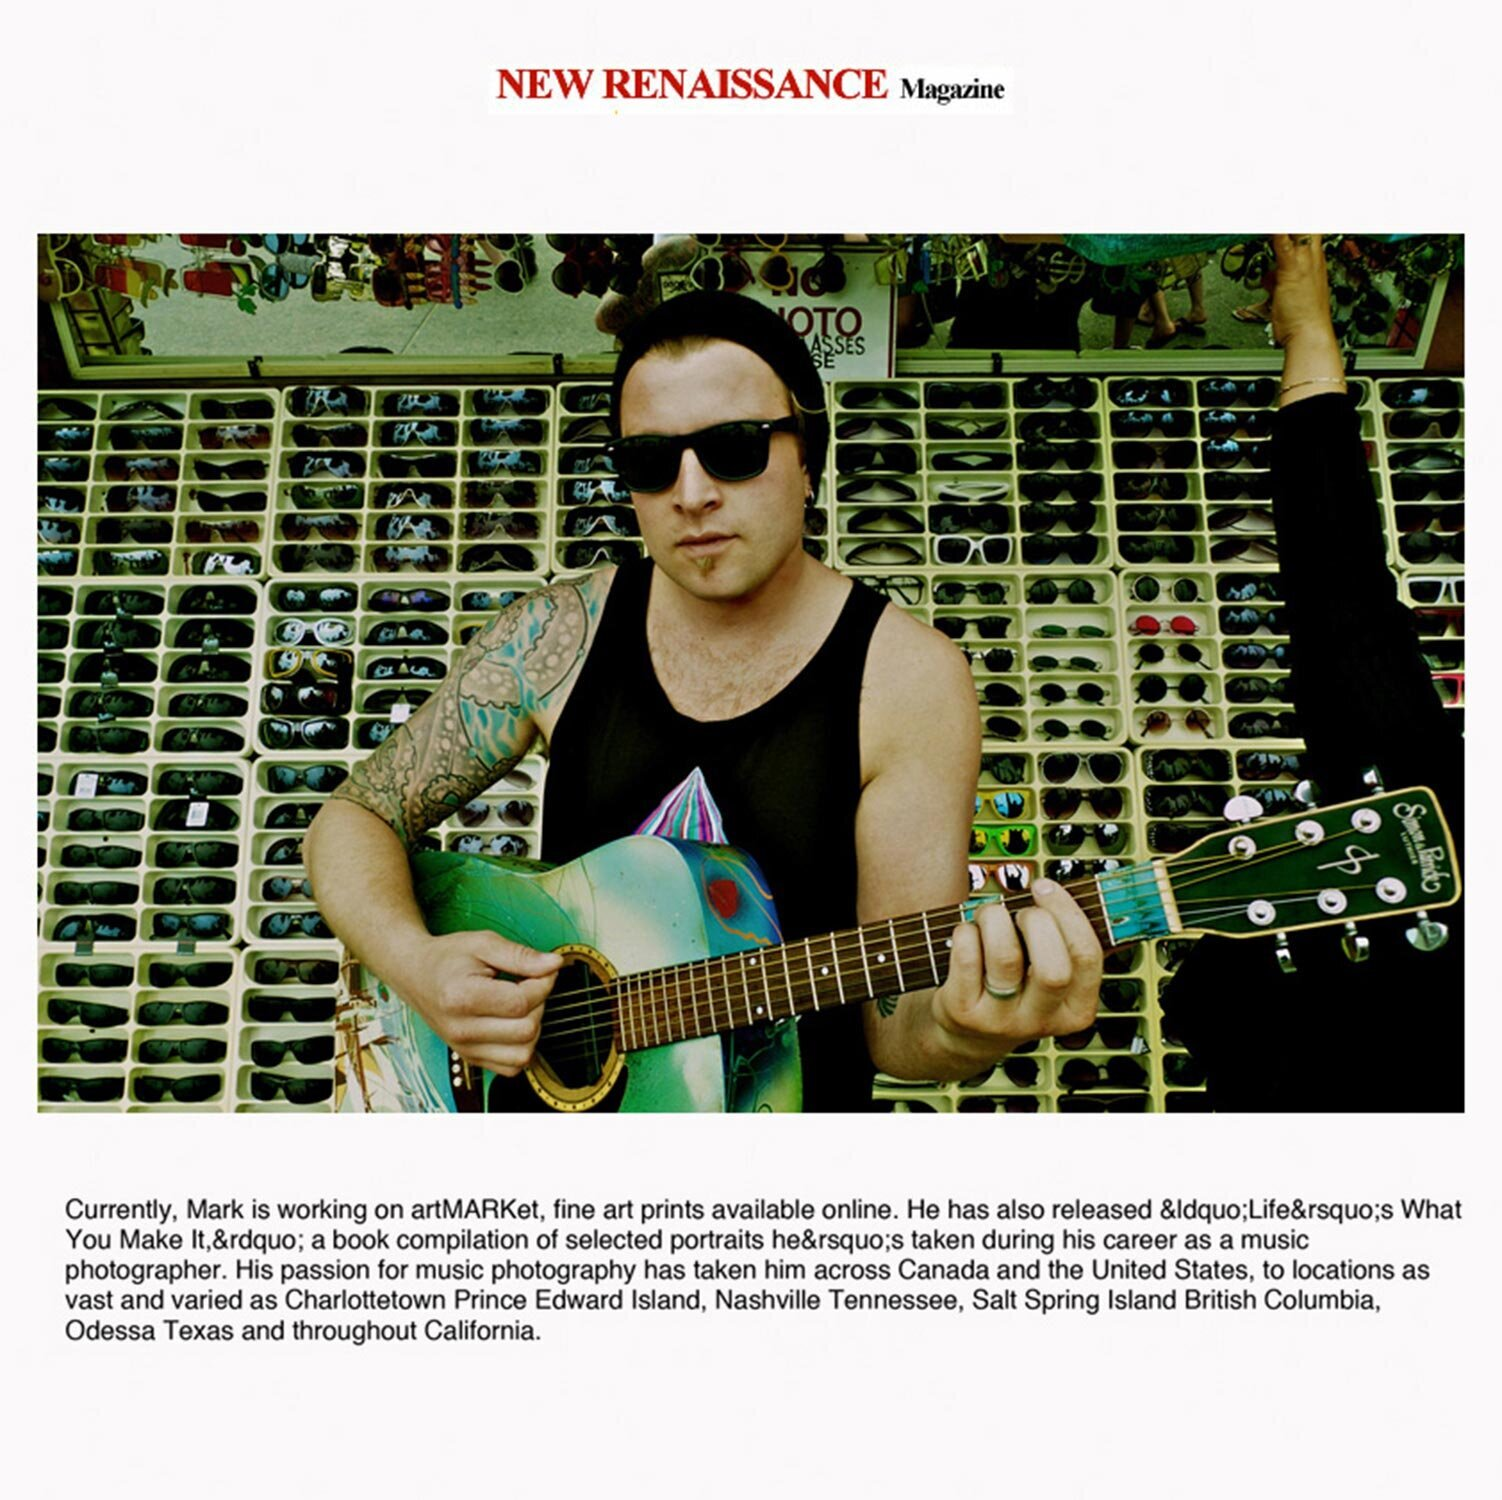 Article featuring Los Angeles based Mark Maryanovich Photography portrait of musician wearing sunglasses while strumming blue guitar standing in front of rows of sunglasses Publication New Renaissance Magazine page 4